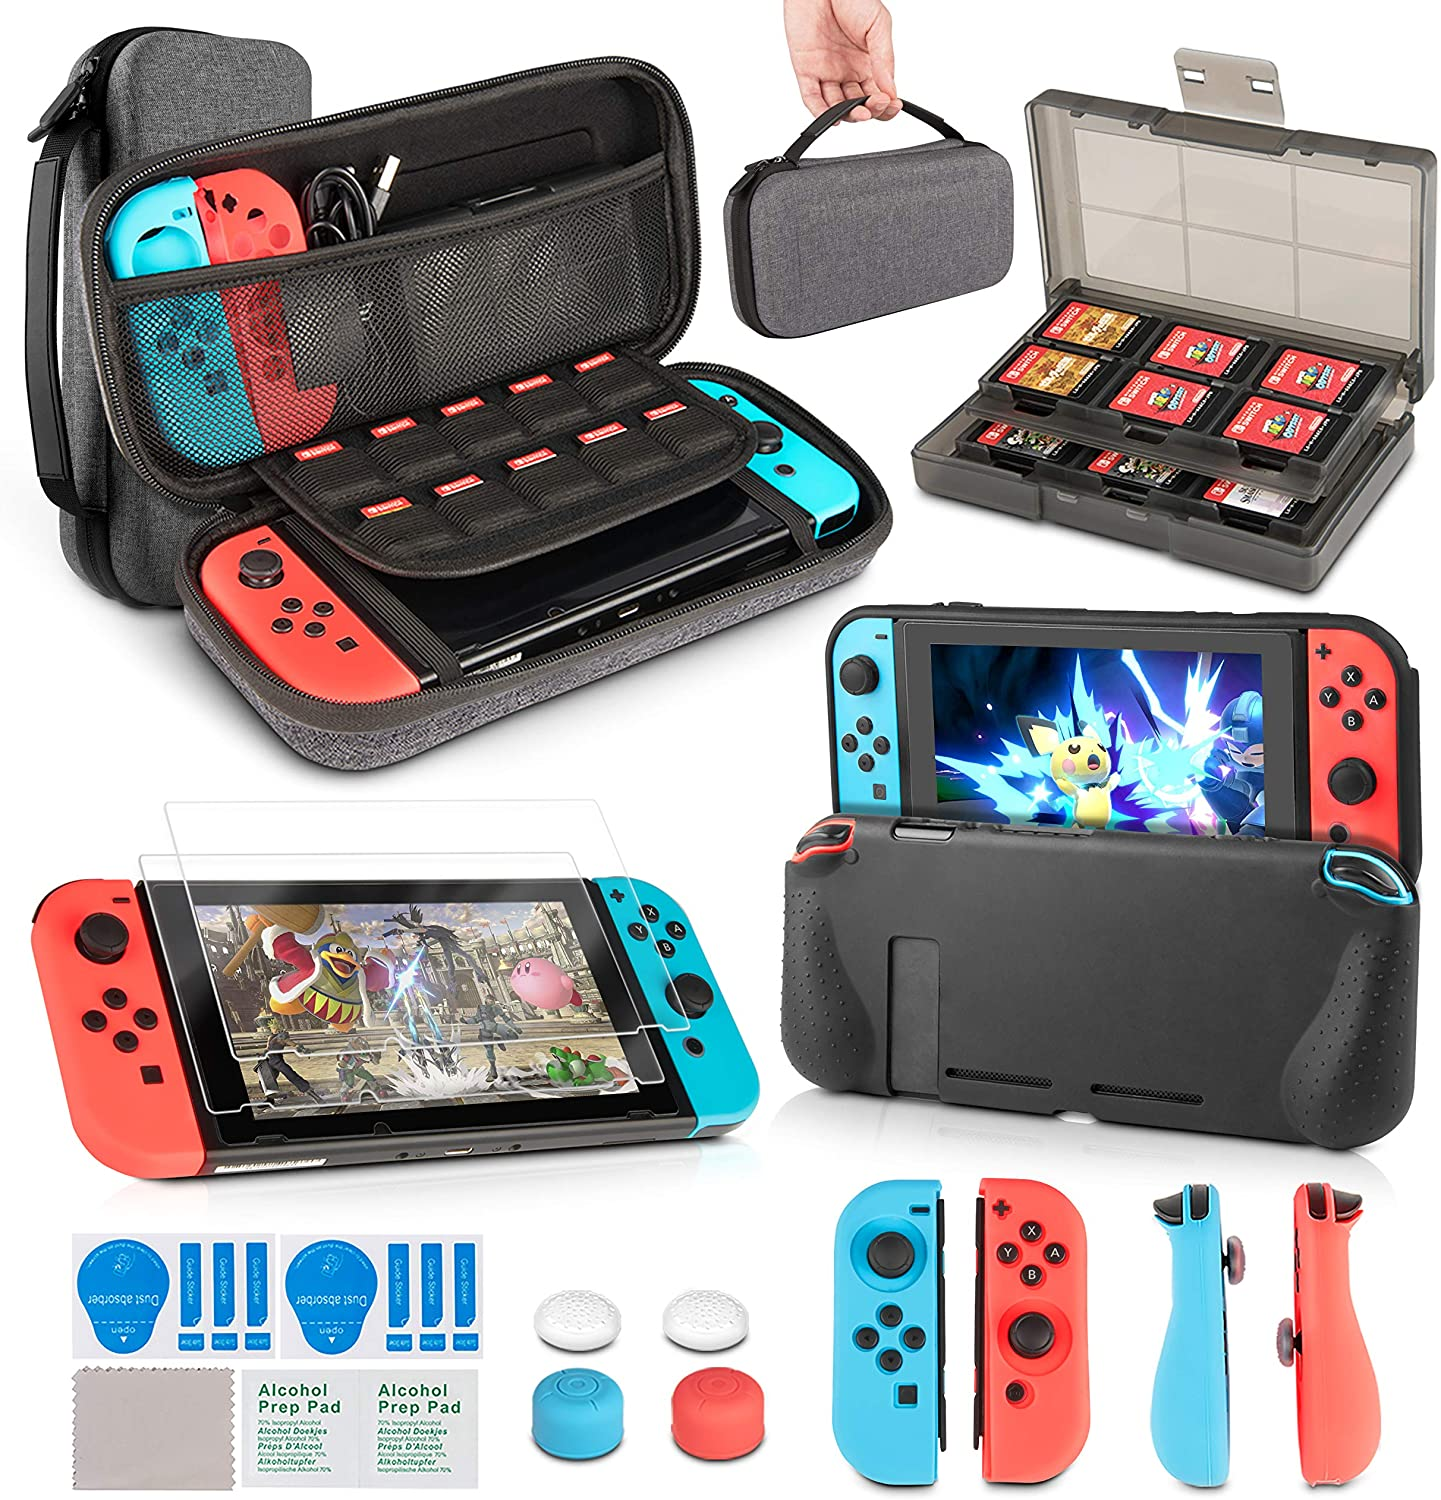 Switch Accessories Kit, innoAura 11 in 1 Accessories Kit with Carrying Case, Game Card Slot Holder, TPU Cover, Joycon Covers, Thumb Caps, Tempered Glass Screen Protectors for NS Switch